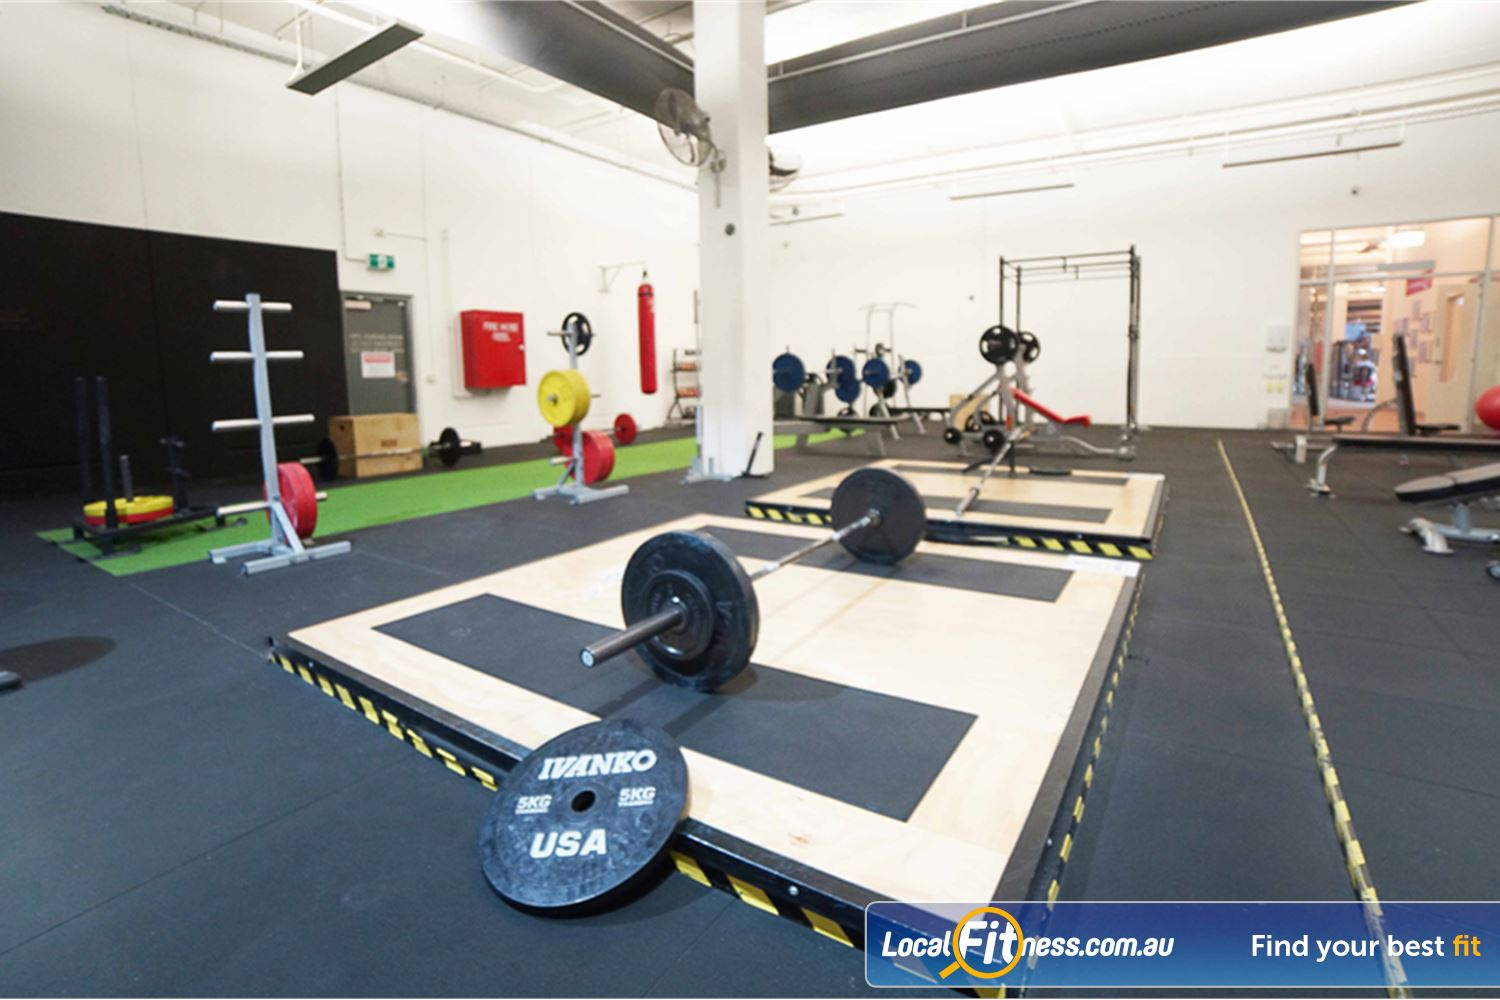 Goodlife Health Clubs Near Middle Park The dedicated South Melbourne HIIT gym area.